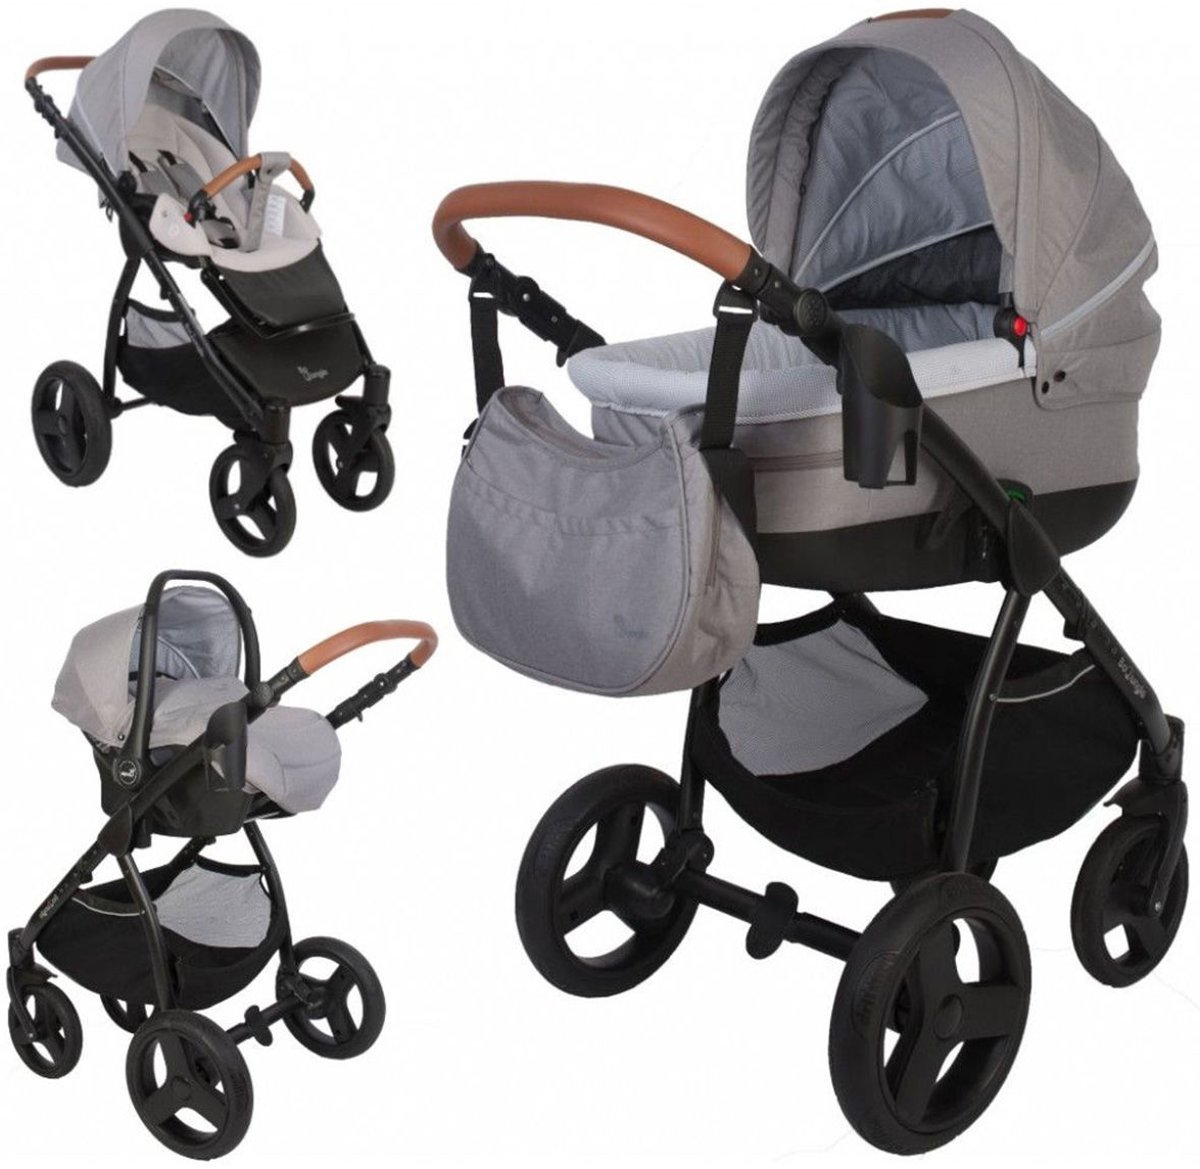 Bo Jungle B-Zen Stroller Grijs 5 in 1 Combi Kinderwagen (incl. autostoel)